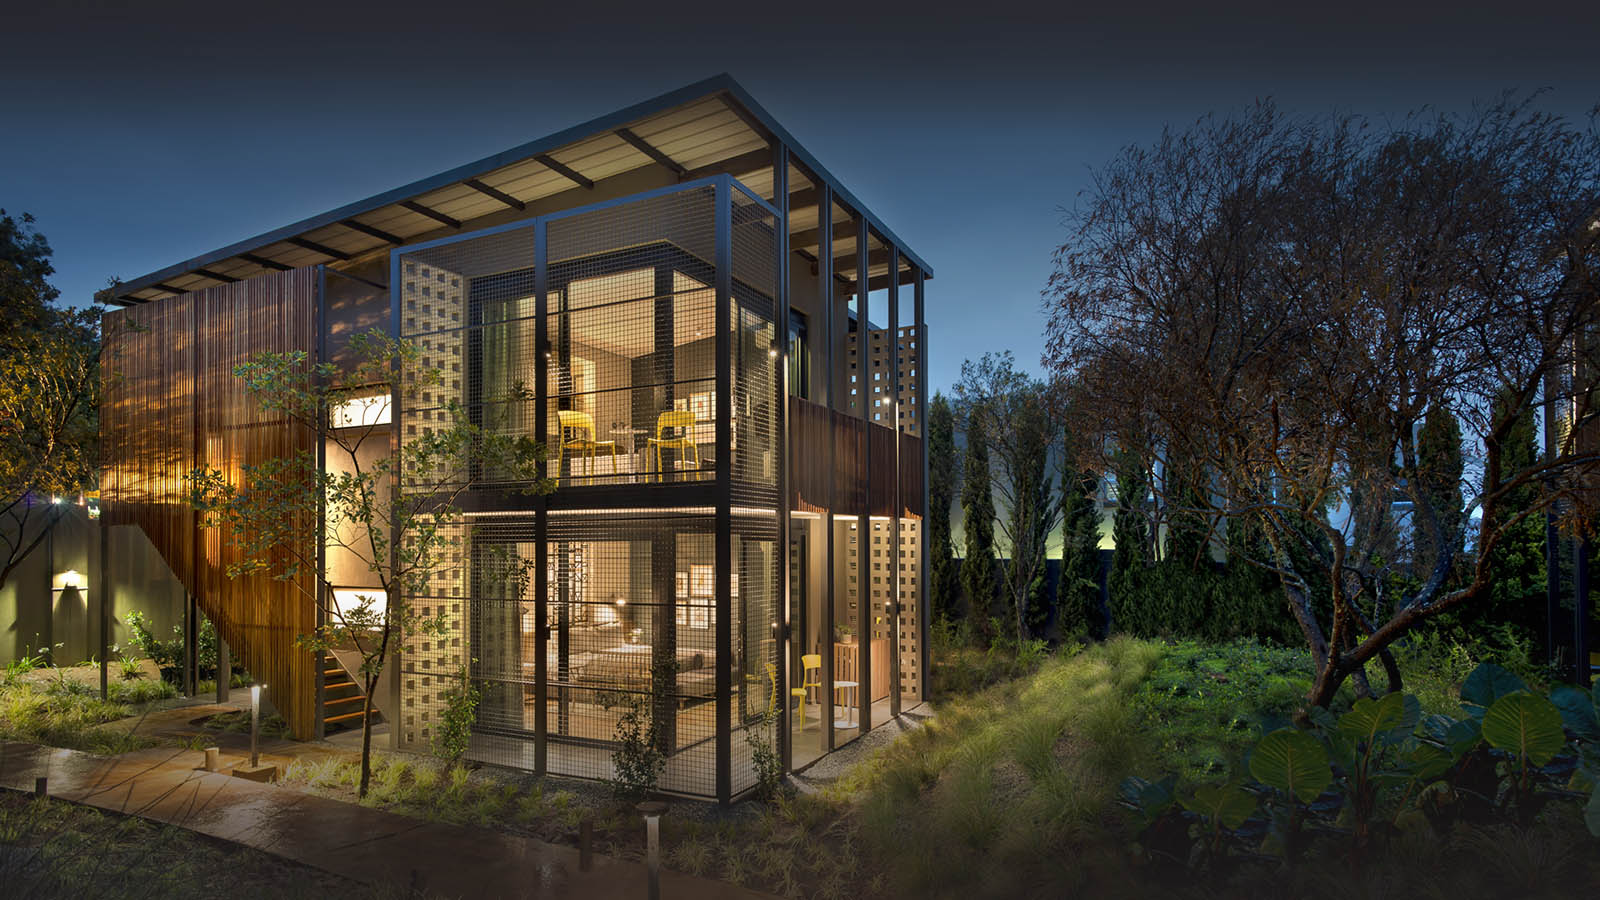 the peech boutique-hotel-melrose-johannesburg-lodges-zambia-in-style-south-africa-unique-eveing-view-exterior